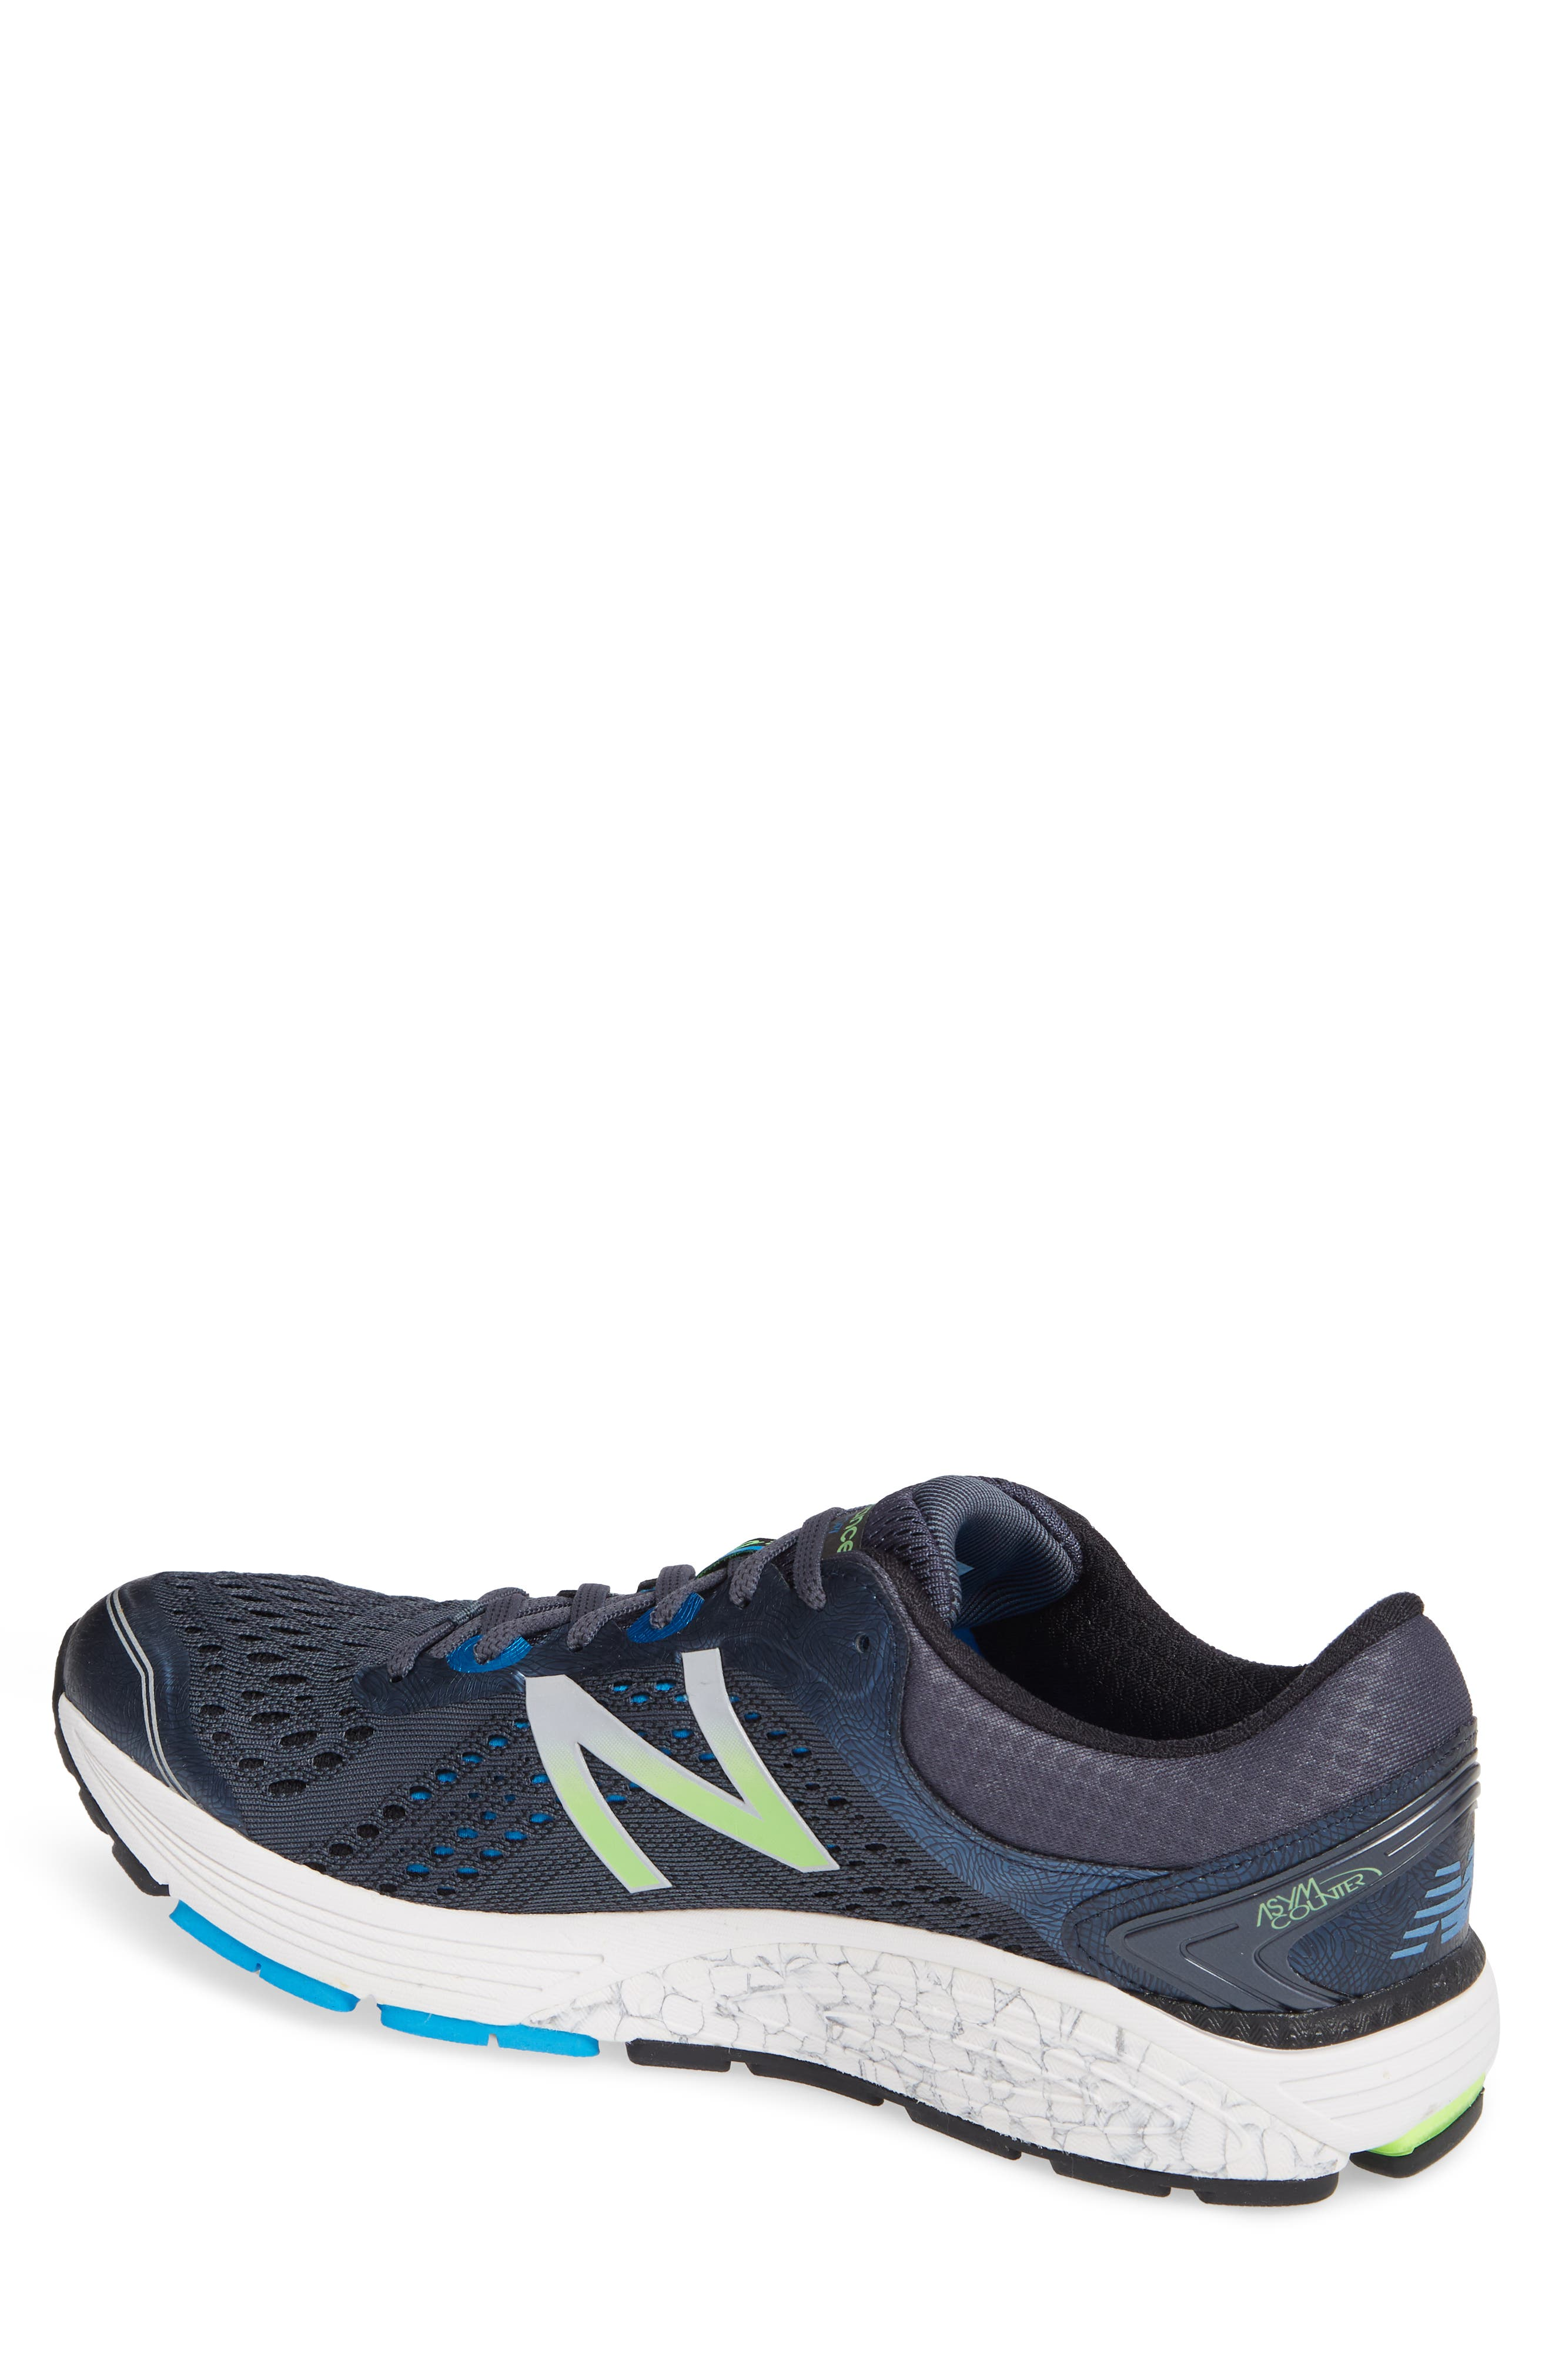 1260v7 Running Shoe,                             Alternate thumbnail 2, color,                             THUNDER